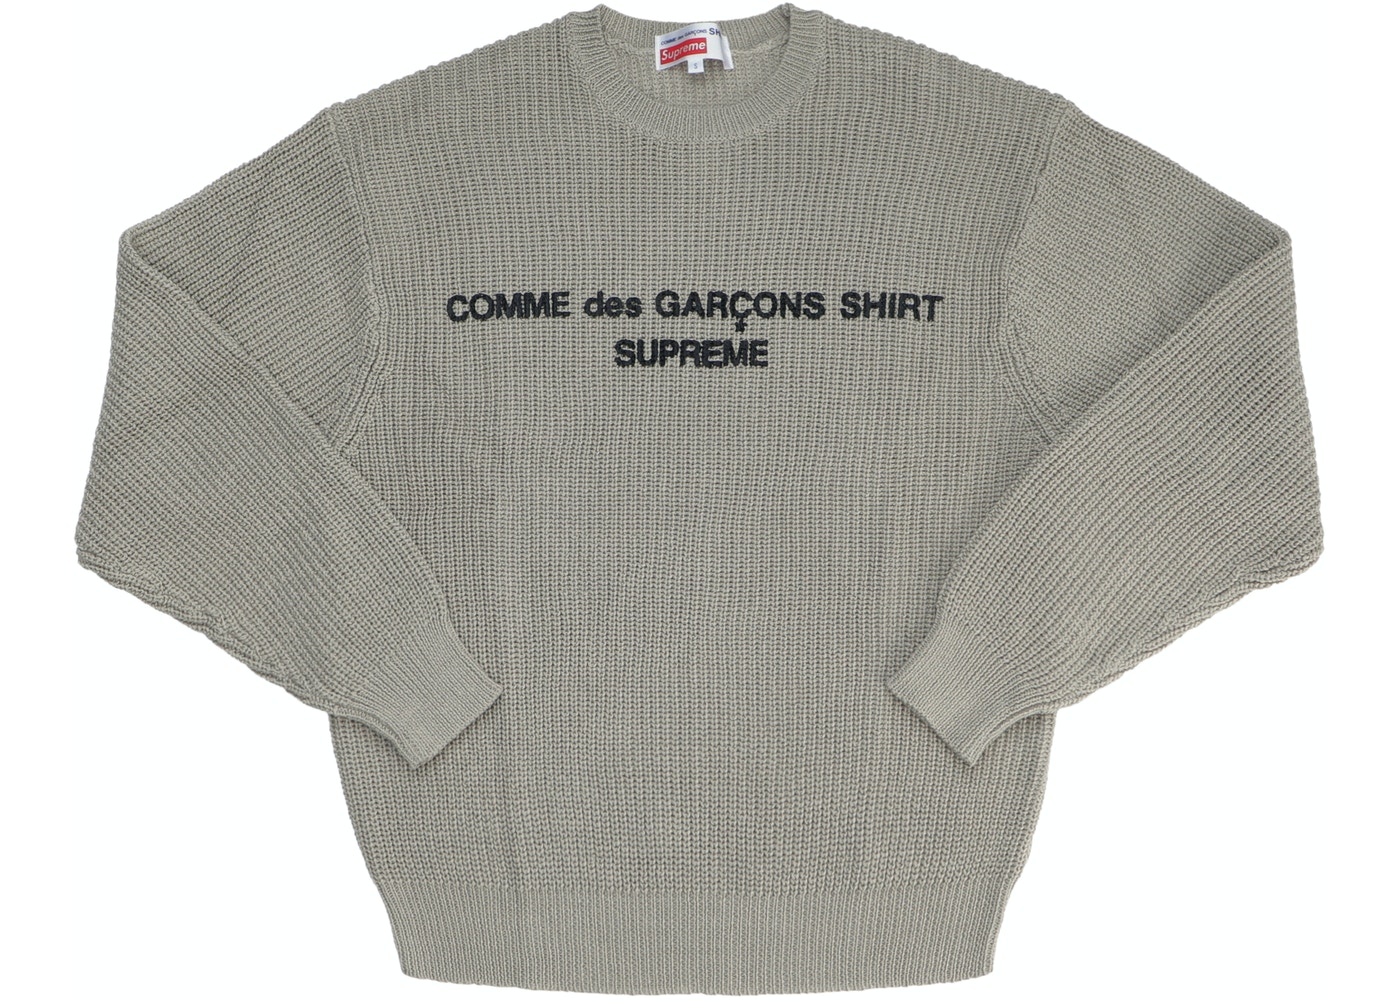 c96a998611d5aa Sell. or Ask. Size S. View All Bids. Supreme Comme des Garcons SHIRT Sweater  Tan